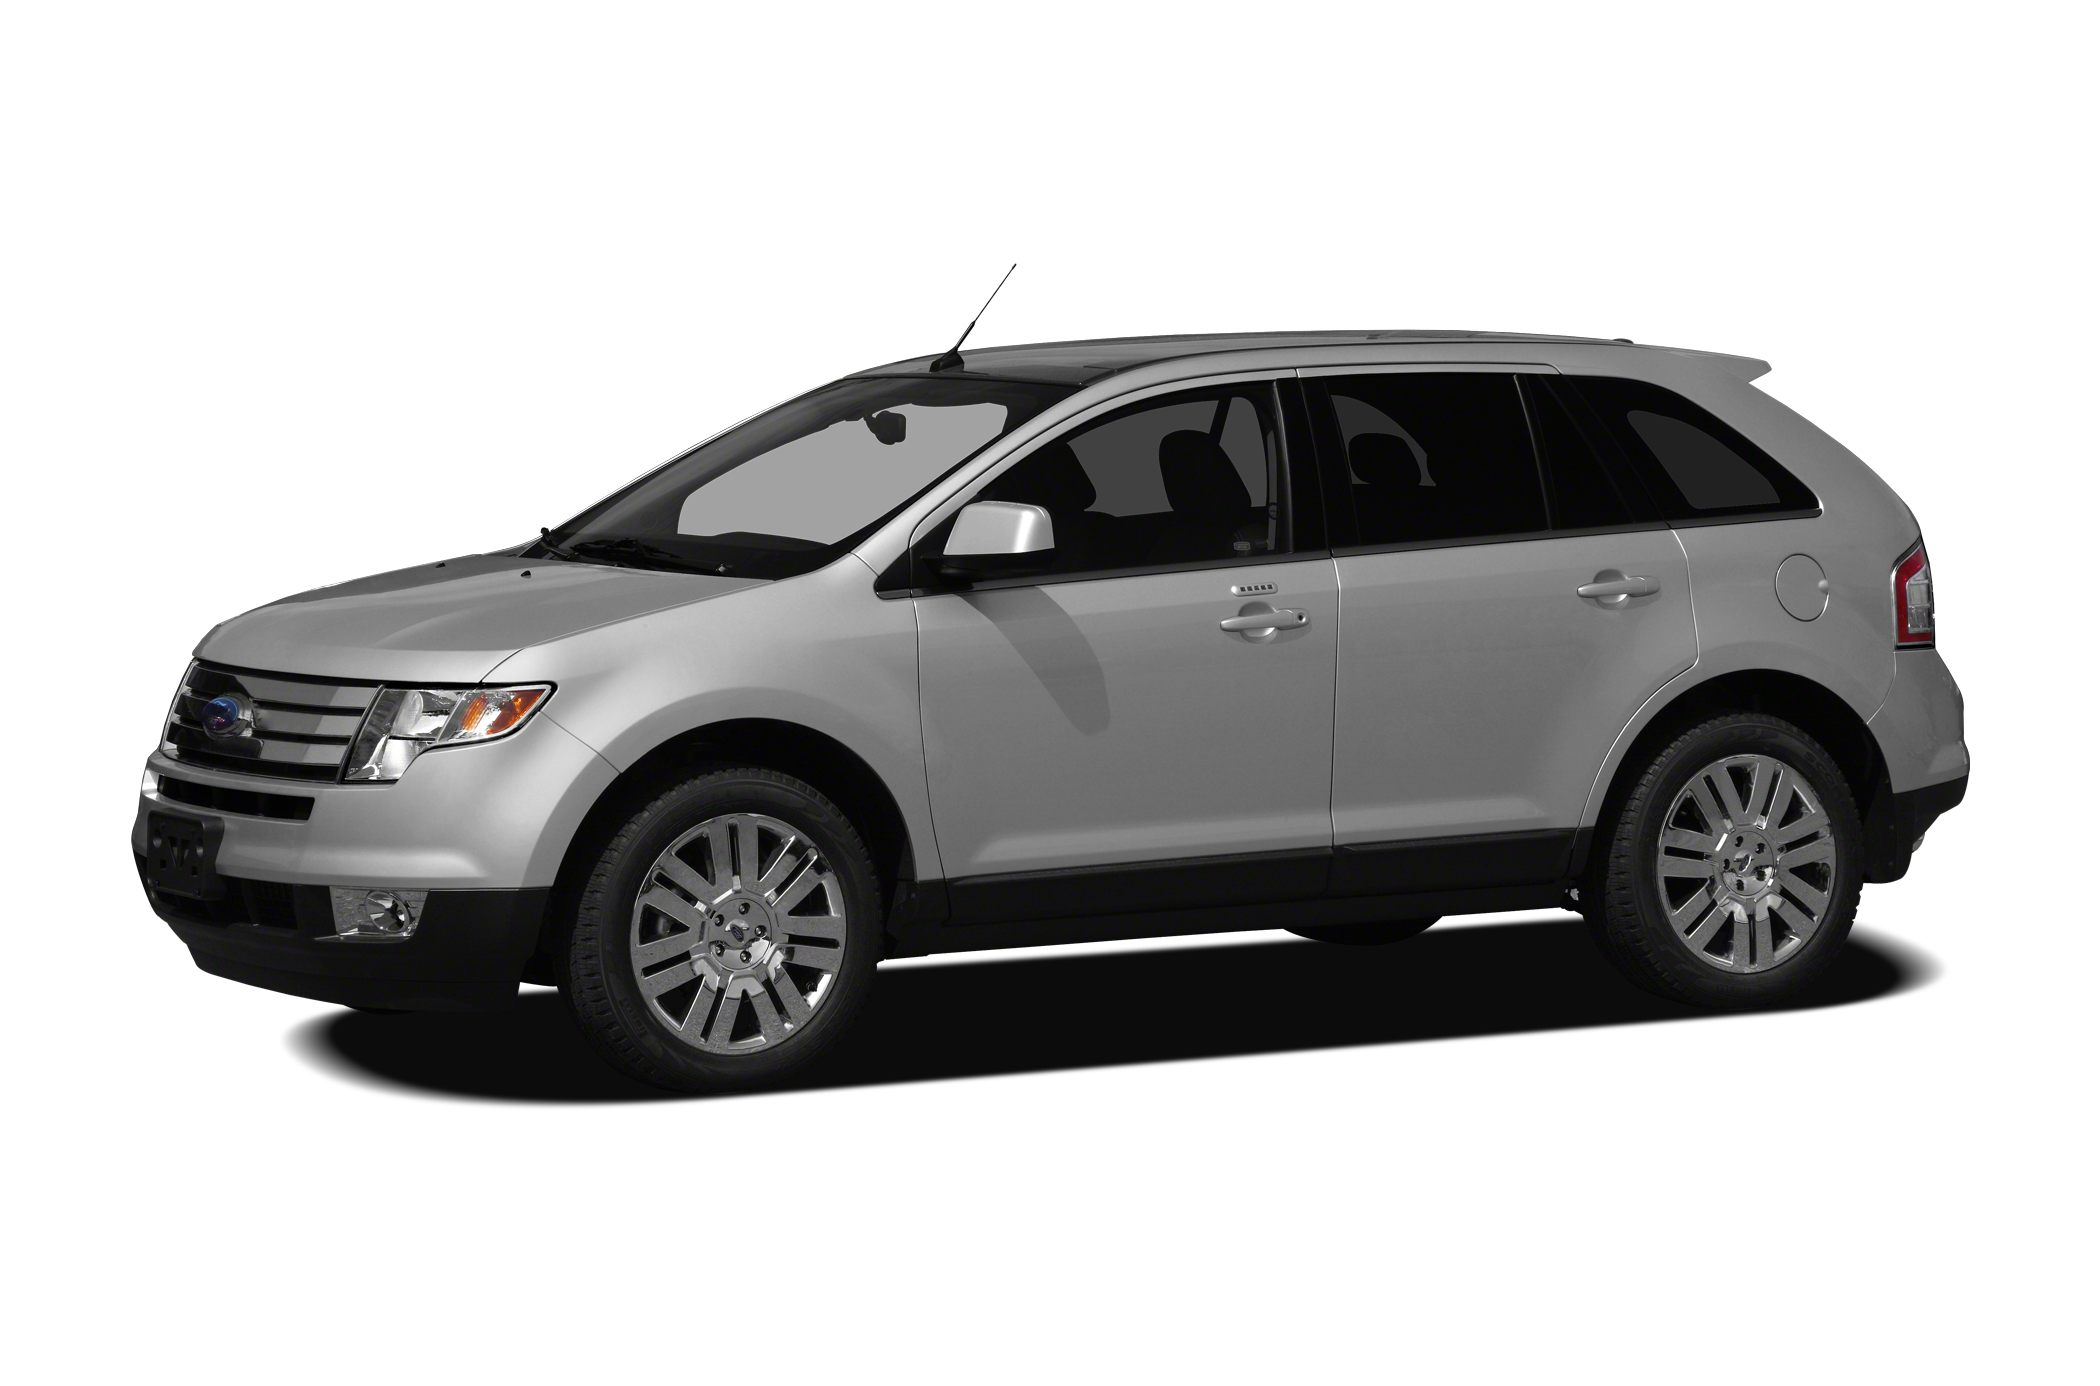 Used  Ford Edge Sel Inventory Vehicle Details At Ipswich Ford Inc Your Ipswich Massachusetts Ford Dealer